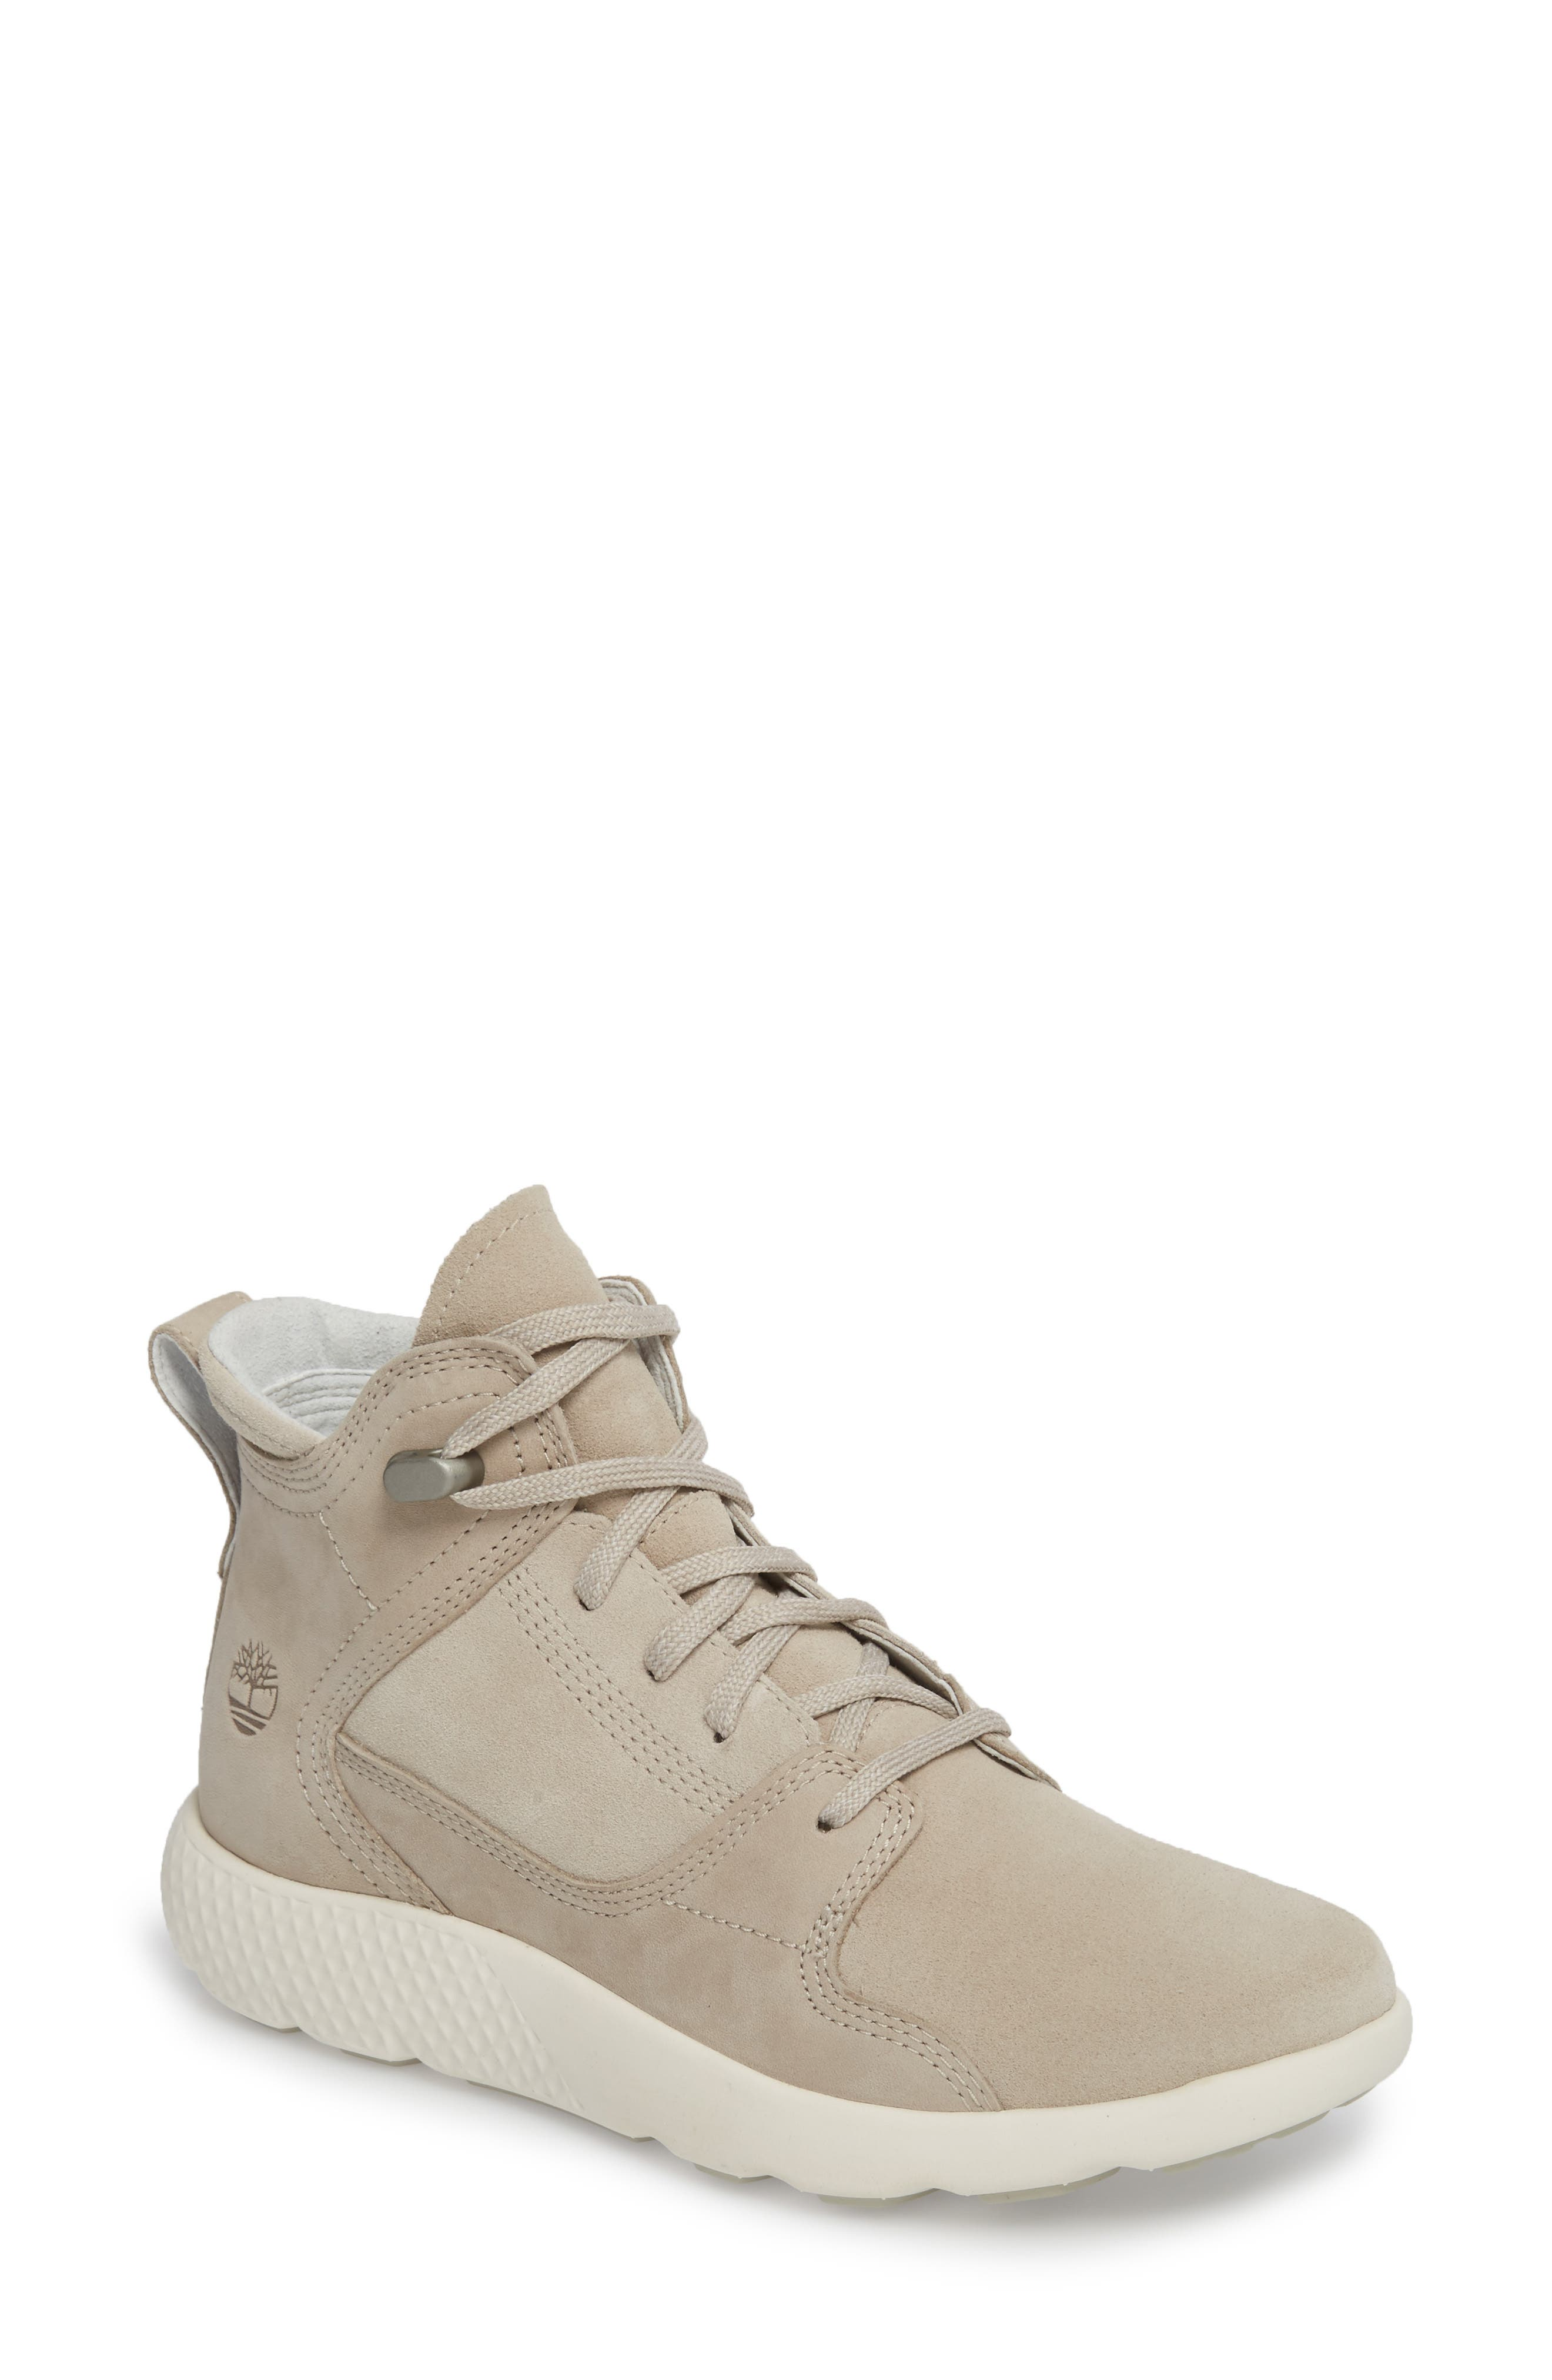 FlyRoam Sneaker,                             Main thumbnail 1, color,                             Pure Cashmere Leather